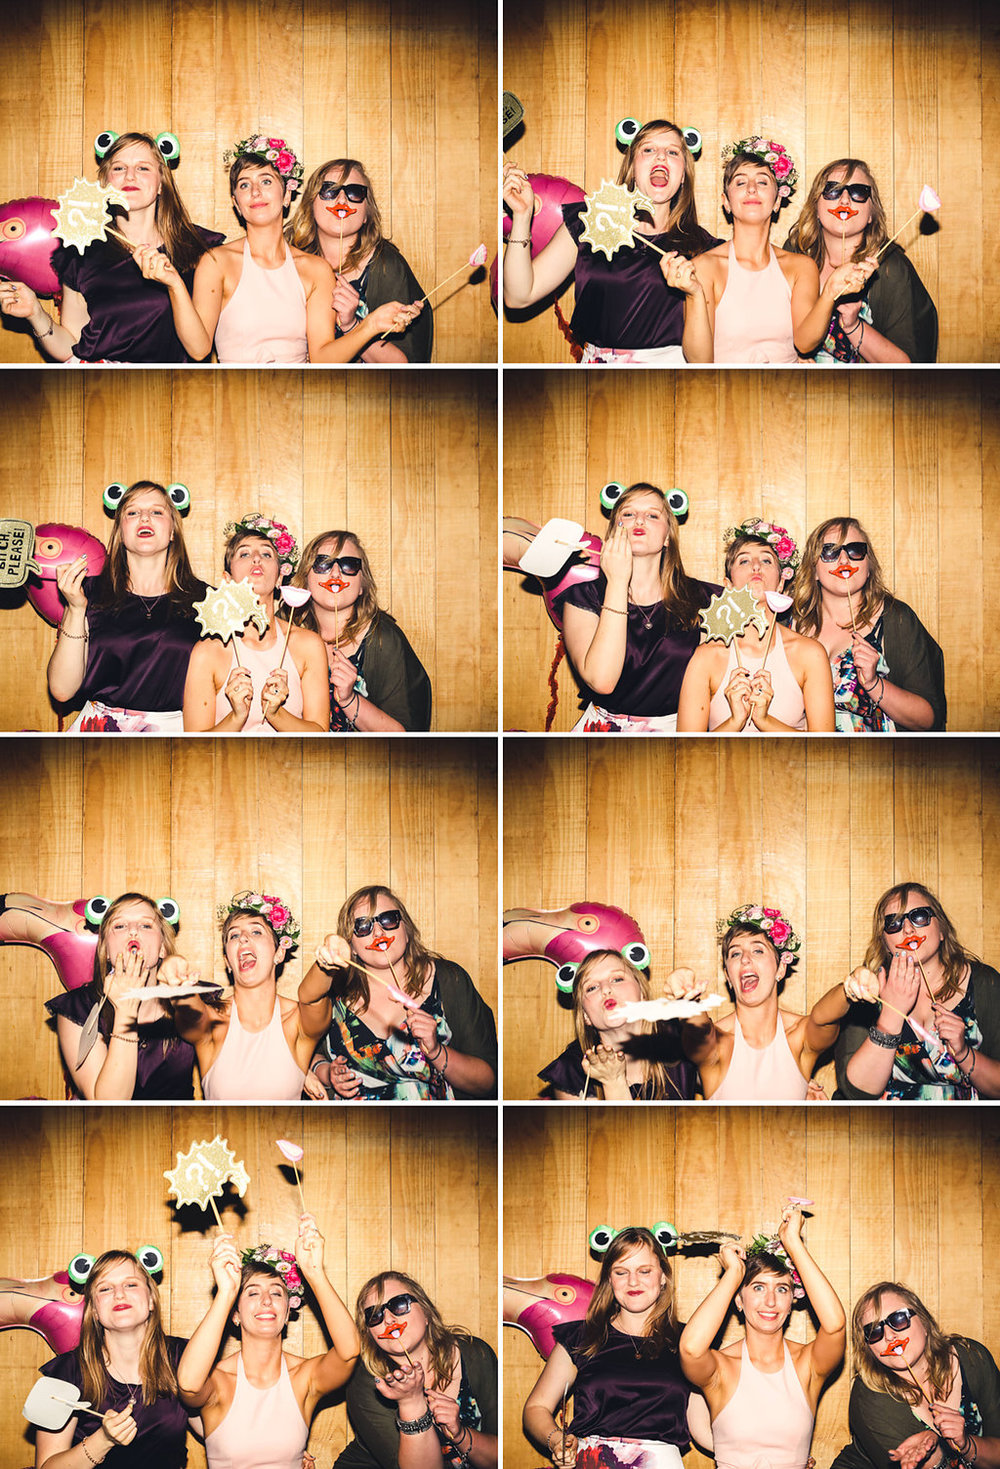 photobooth-072.jpg